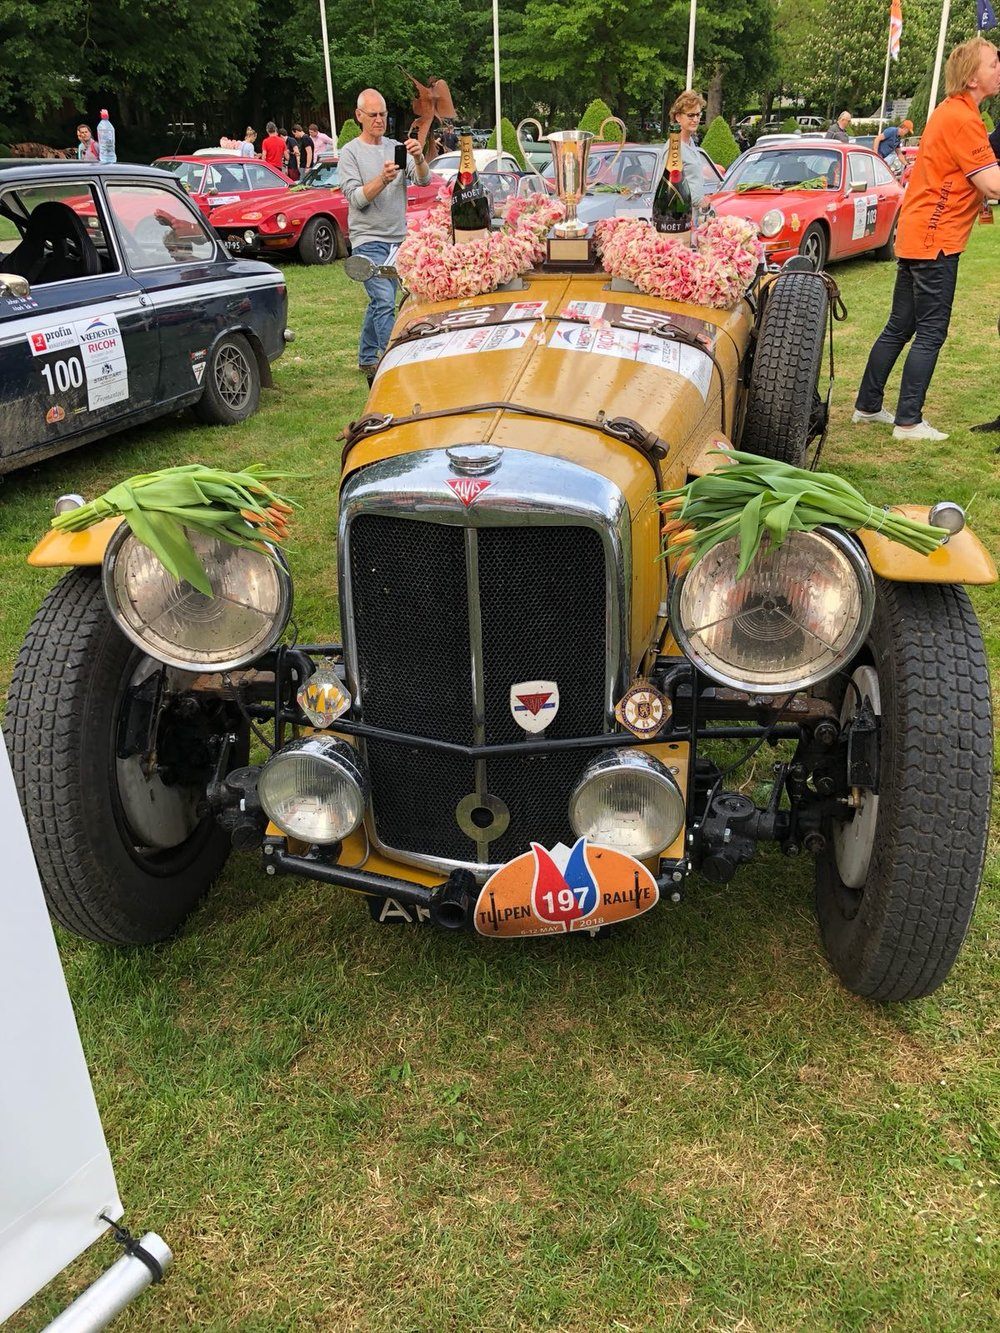 Alvis Speed 25 Special after winning the 2018 Tulpen Rallye.